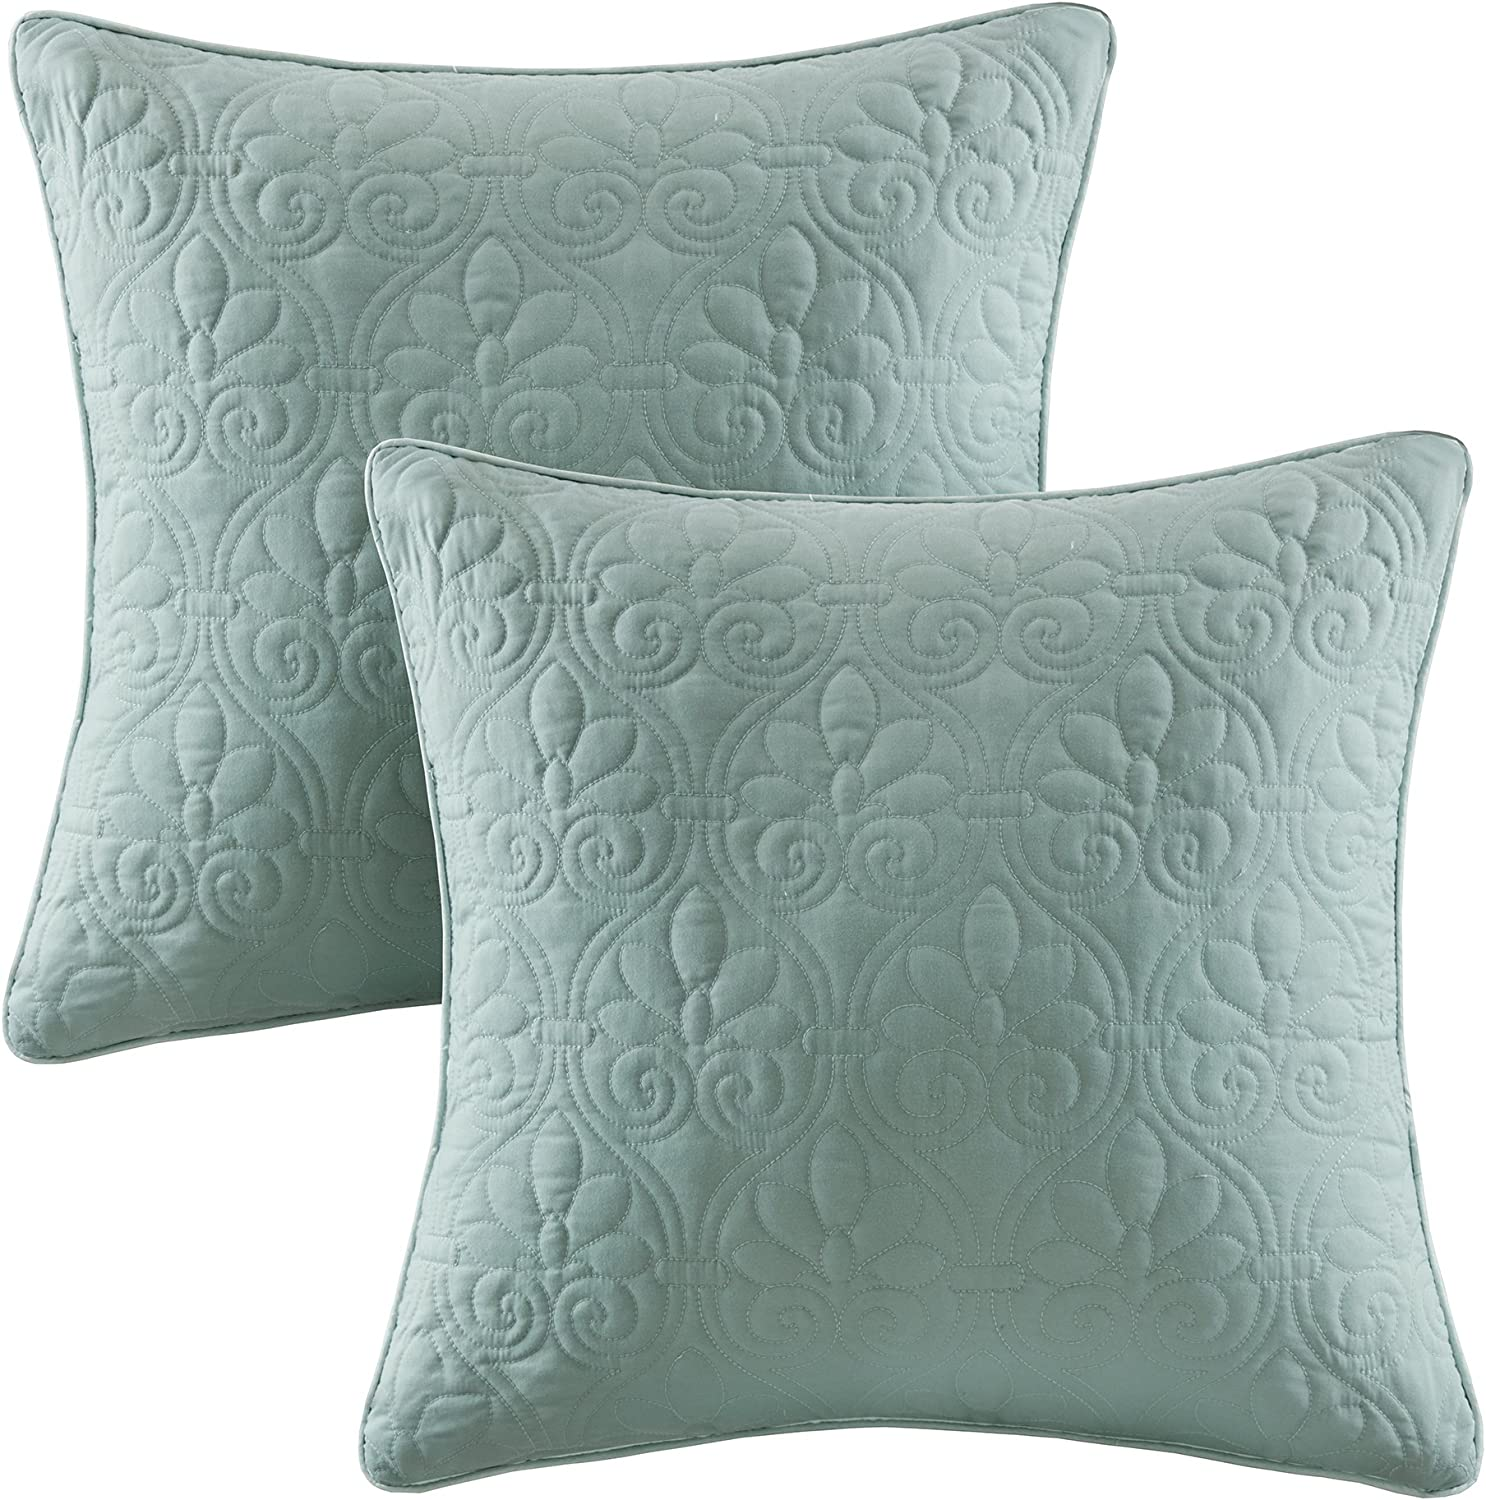 Madison Park Quebec Quilted Throw Pillow, Transitional Square Decorative Pillow, 20X20, Set of 2, Seafoam